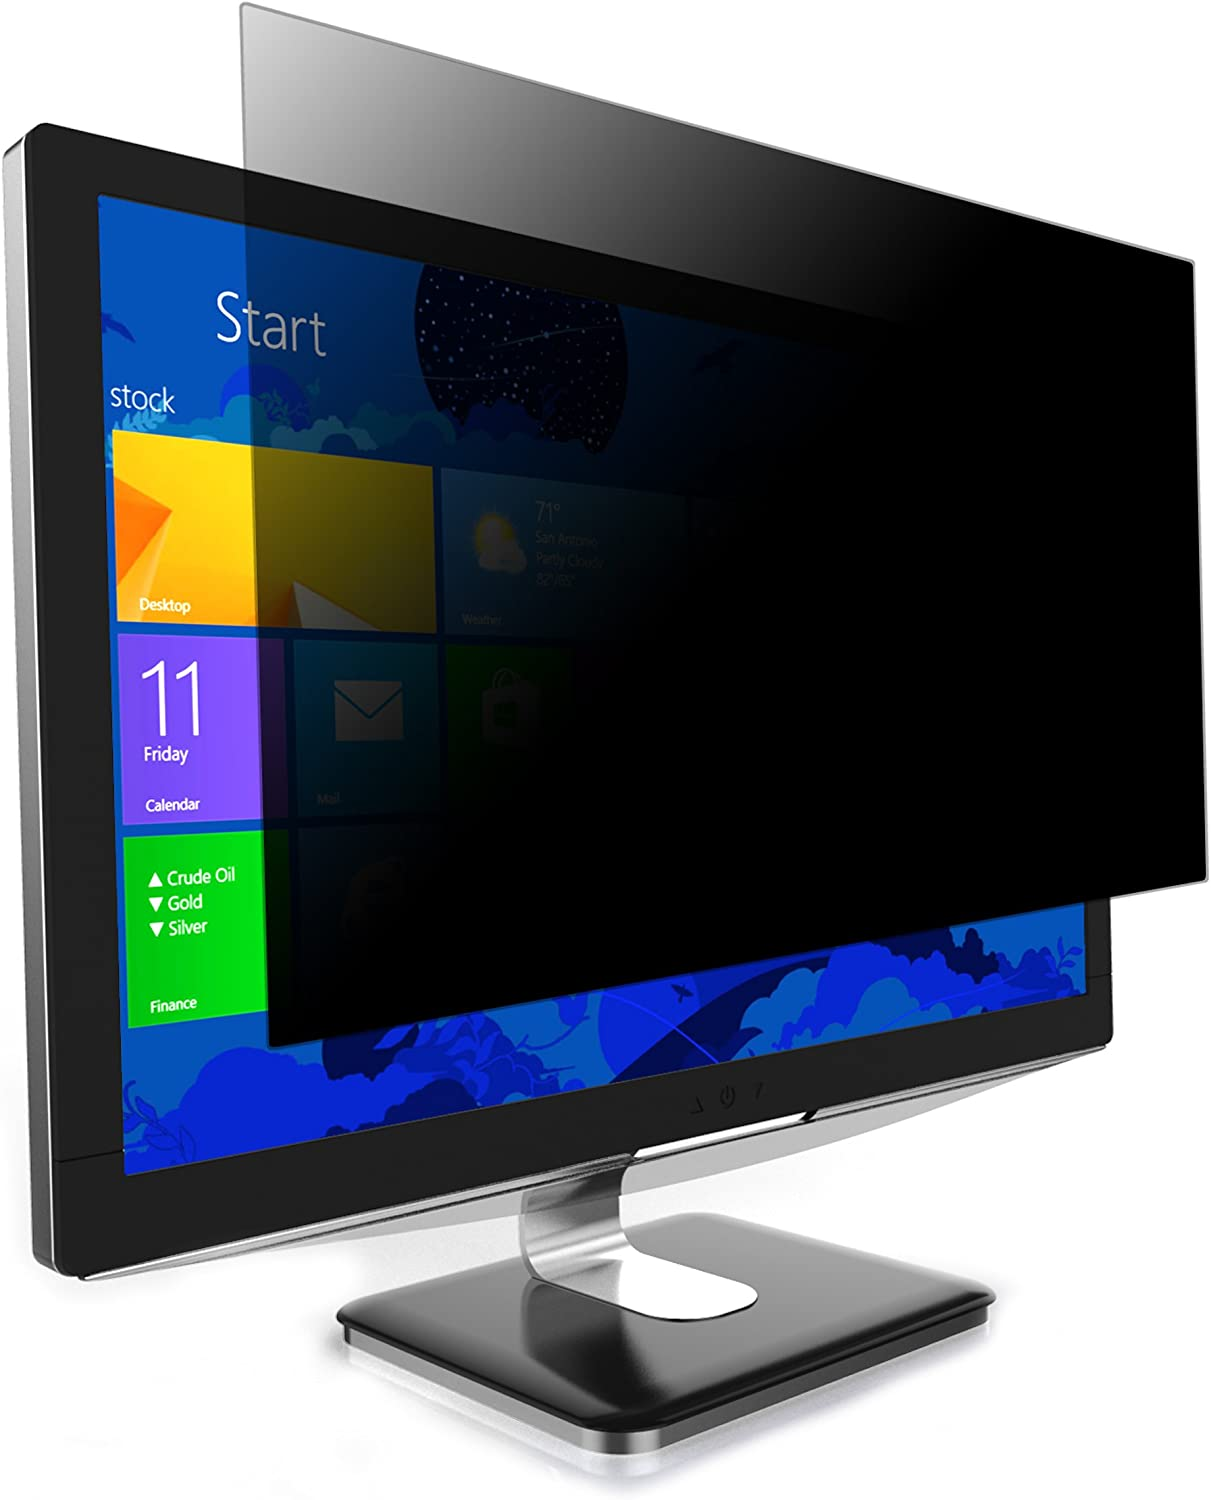 Targus 4Vu Privacy Screen Filter for 27-Inch Widescreen (16:10 Ratio) Monitor, Landscape/Portrait View, Blue Light Filter to Protect Eye Strain (ASF27WUSZ)